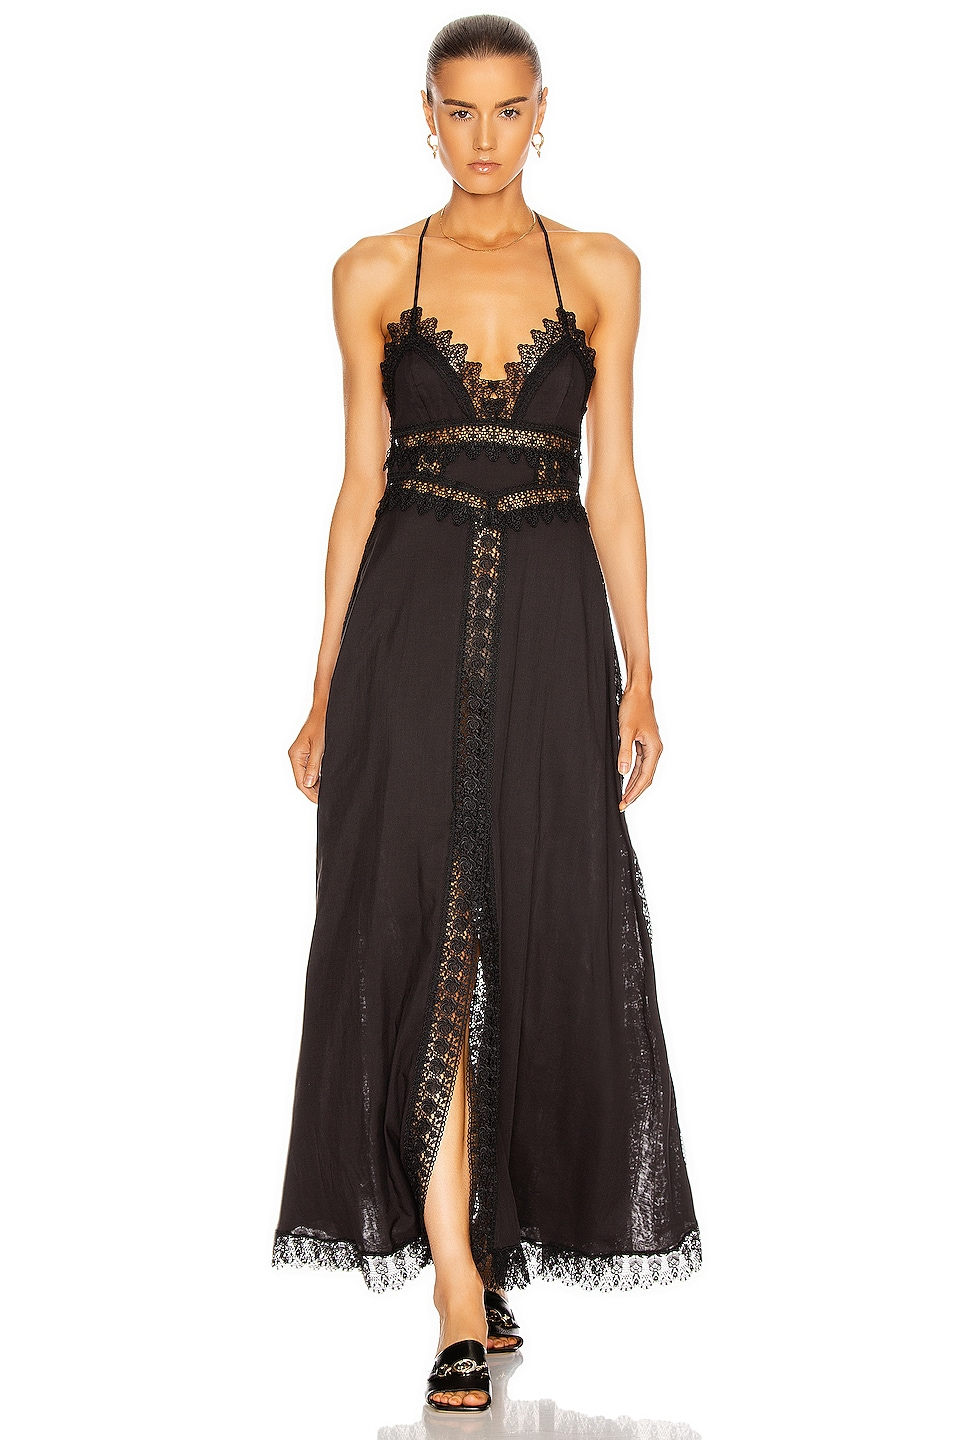 Image 1 of Charo Ruiz Ibiza Imagen Dress in Black